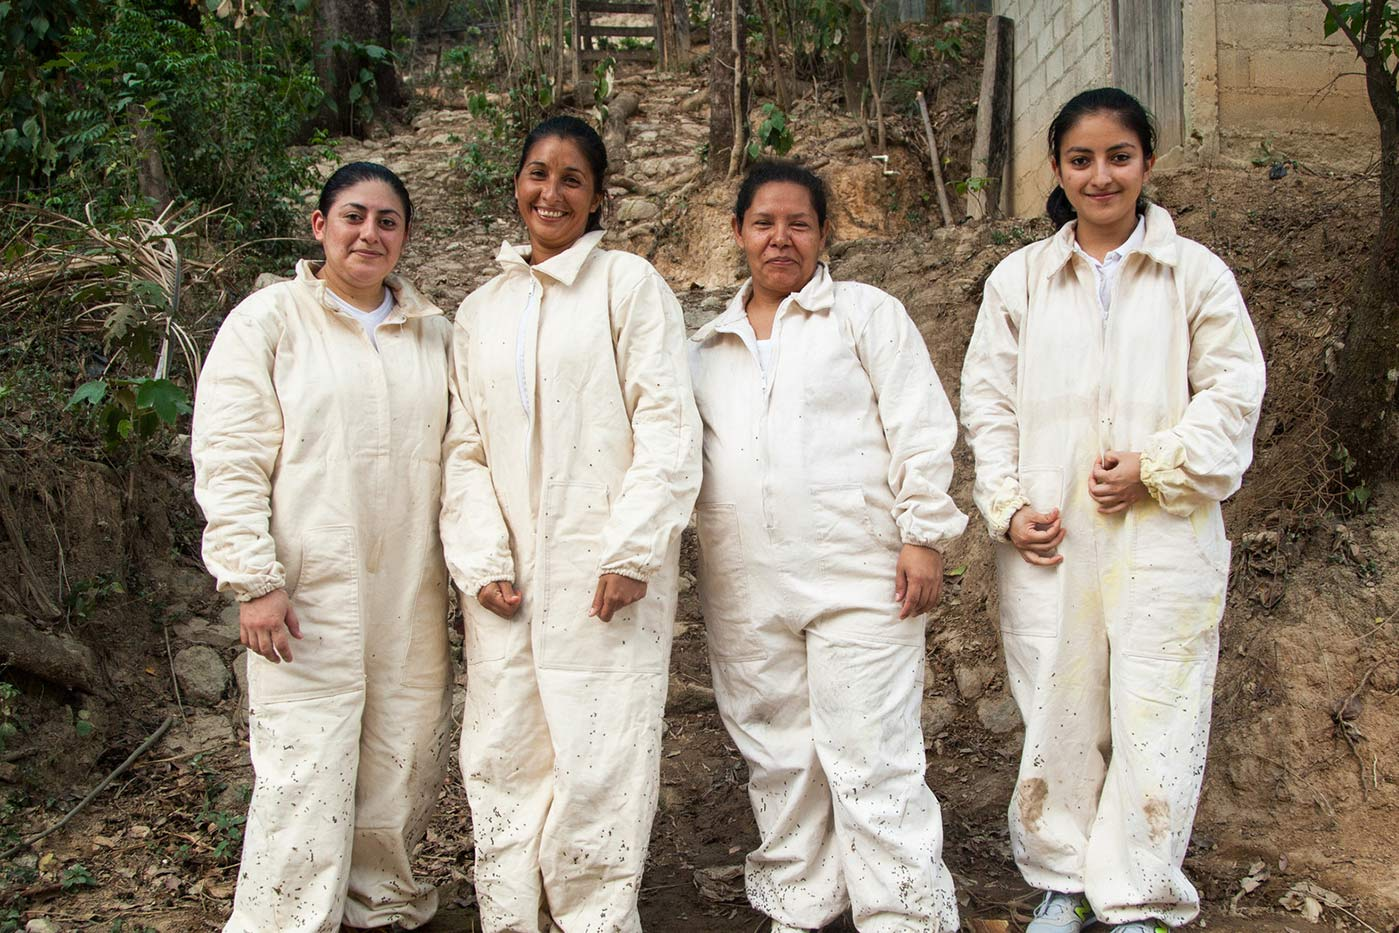 Project participants Norma Martínez, Juana Confesora Díaz, Teresa Vásquez, and Dunia Martínez, who tend to honey producing bees,pose together near their beehives in the municipality of Candelaria